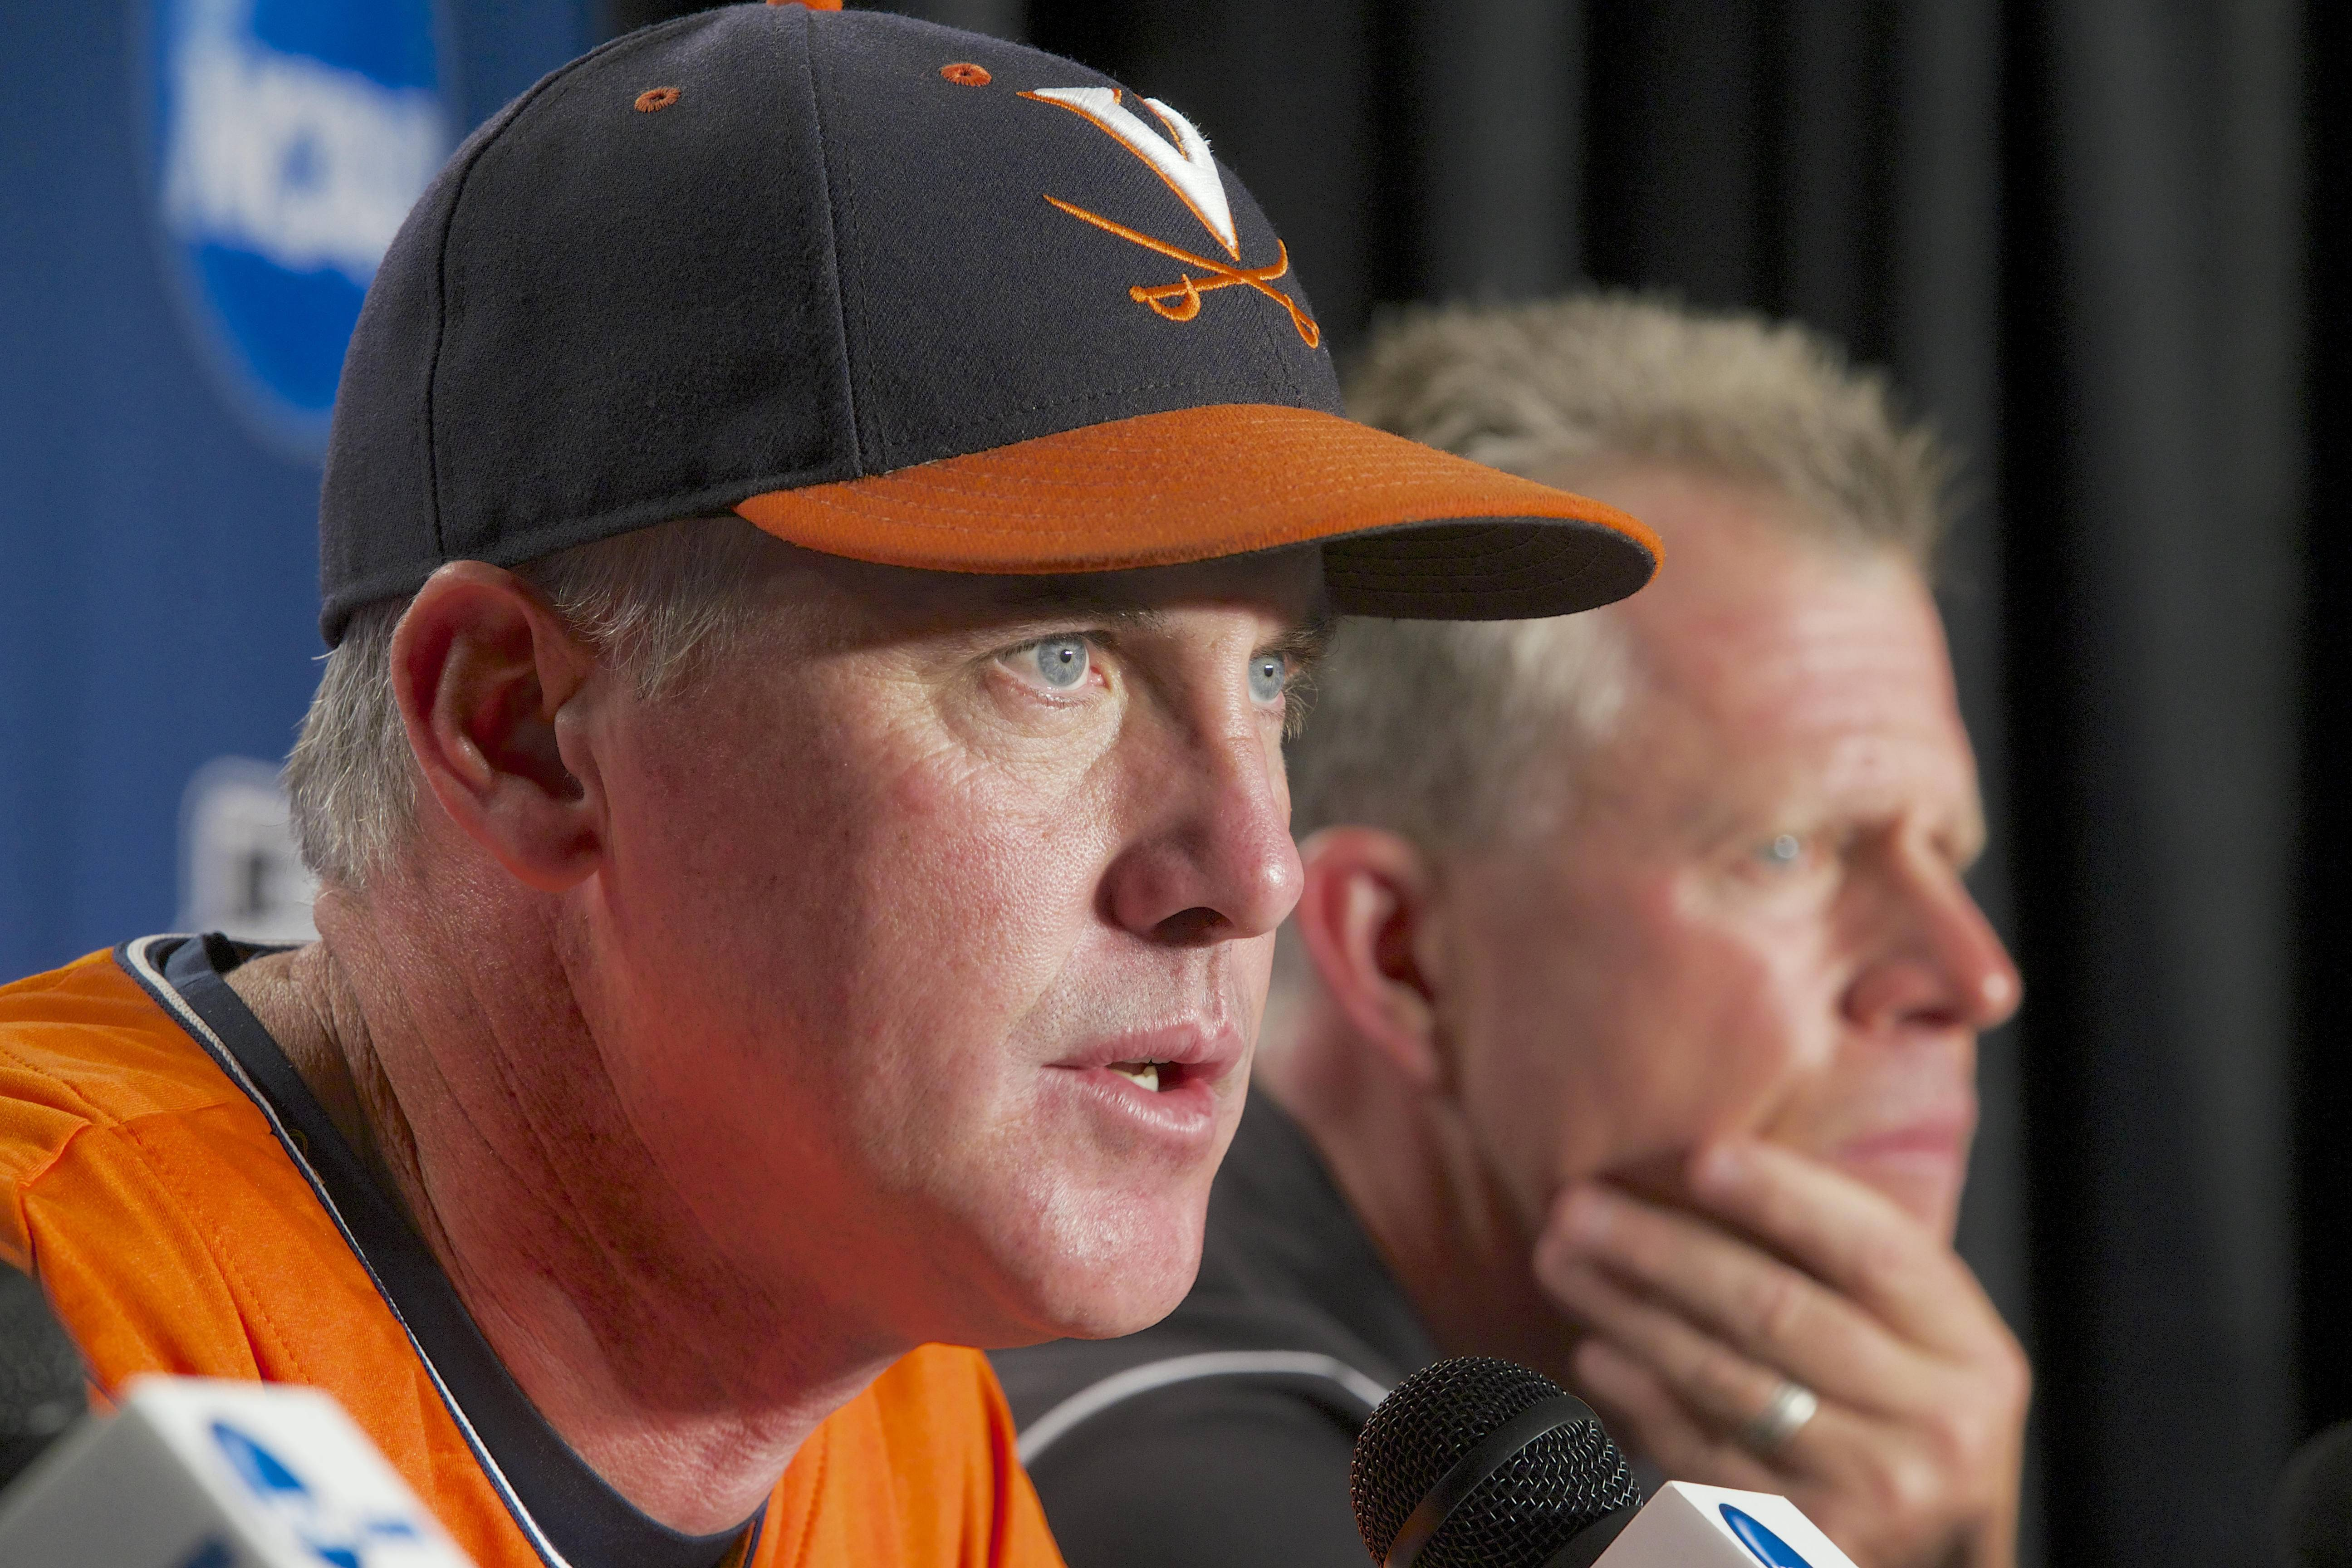 In need of a baseball coach, where might Texas turn? A look